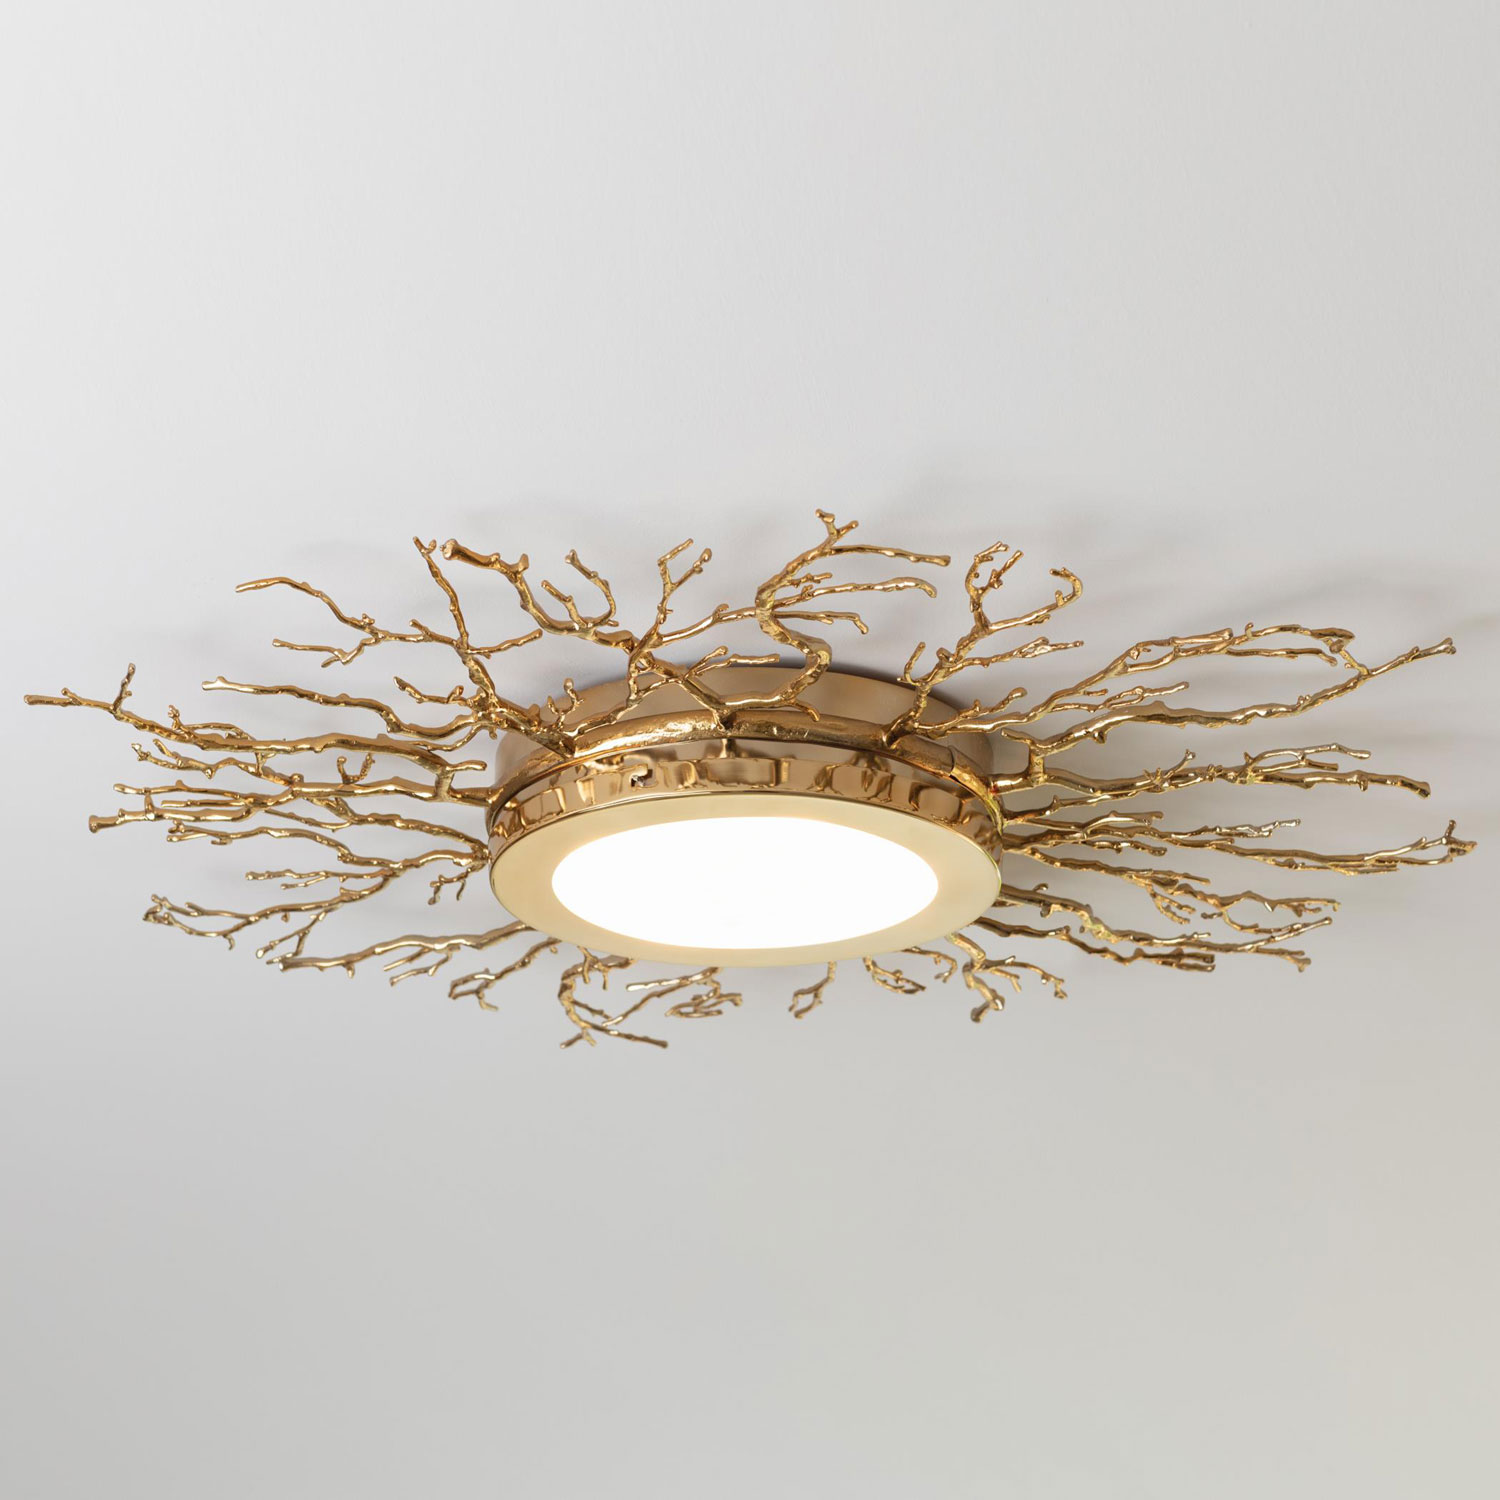 Twig Ceiling Light Fixture By Global Views 9 93221